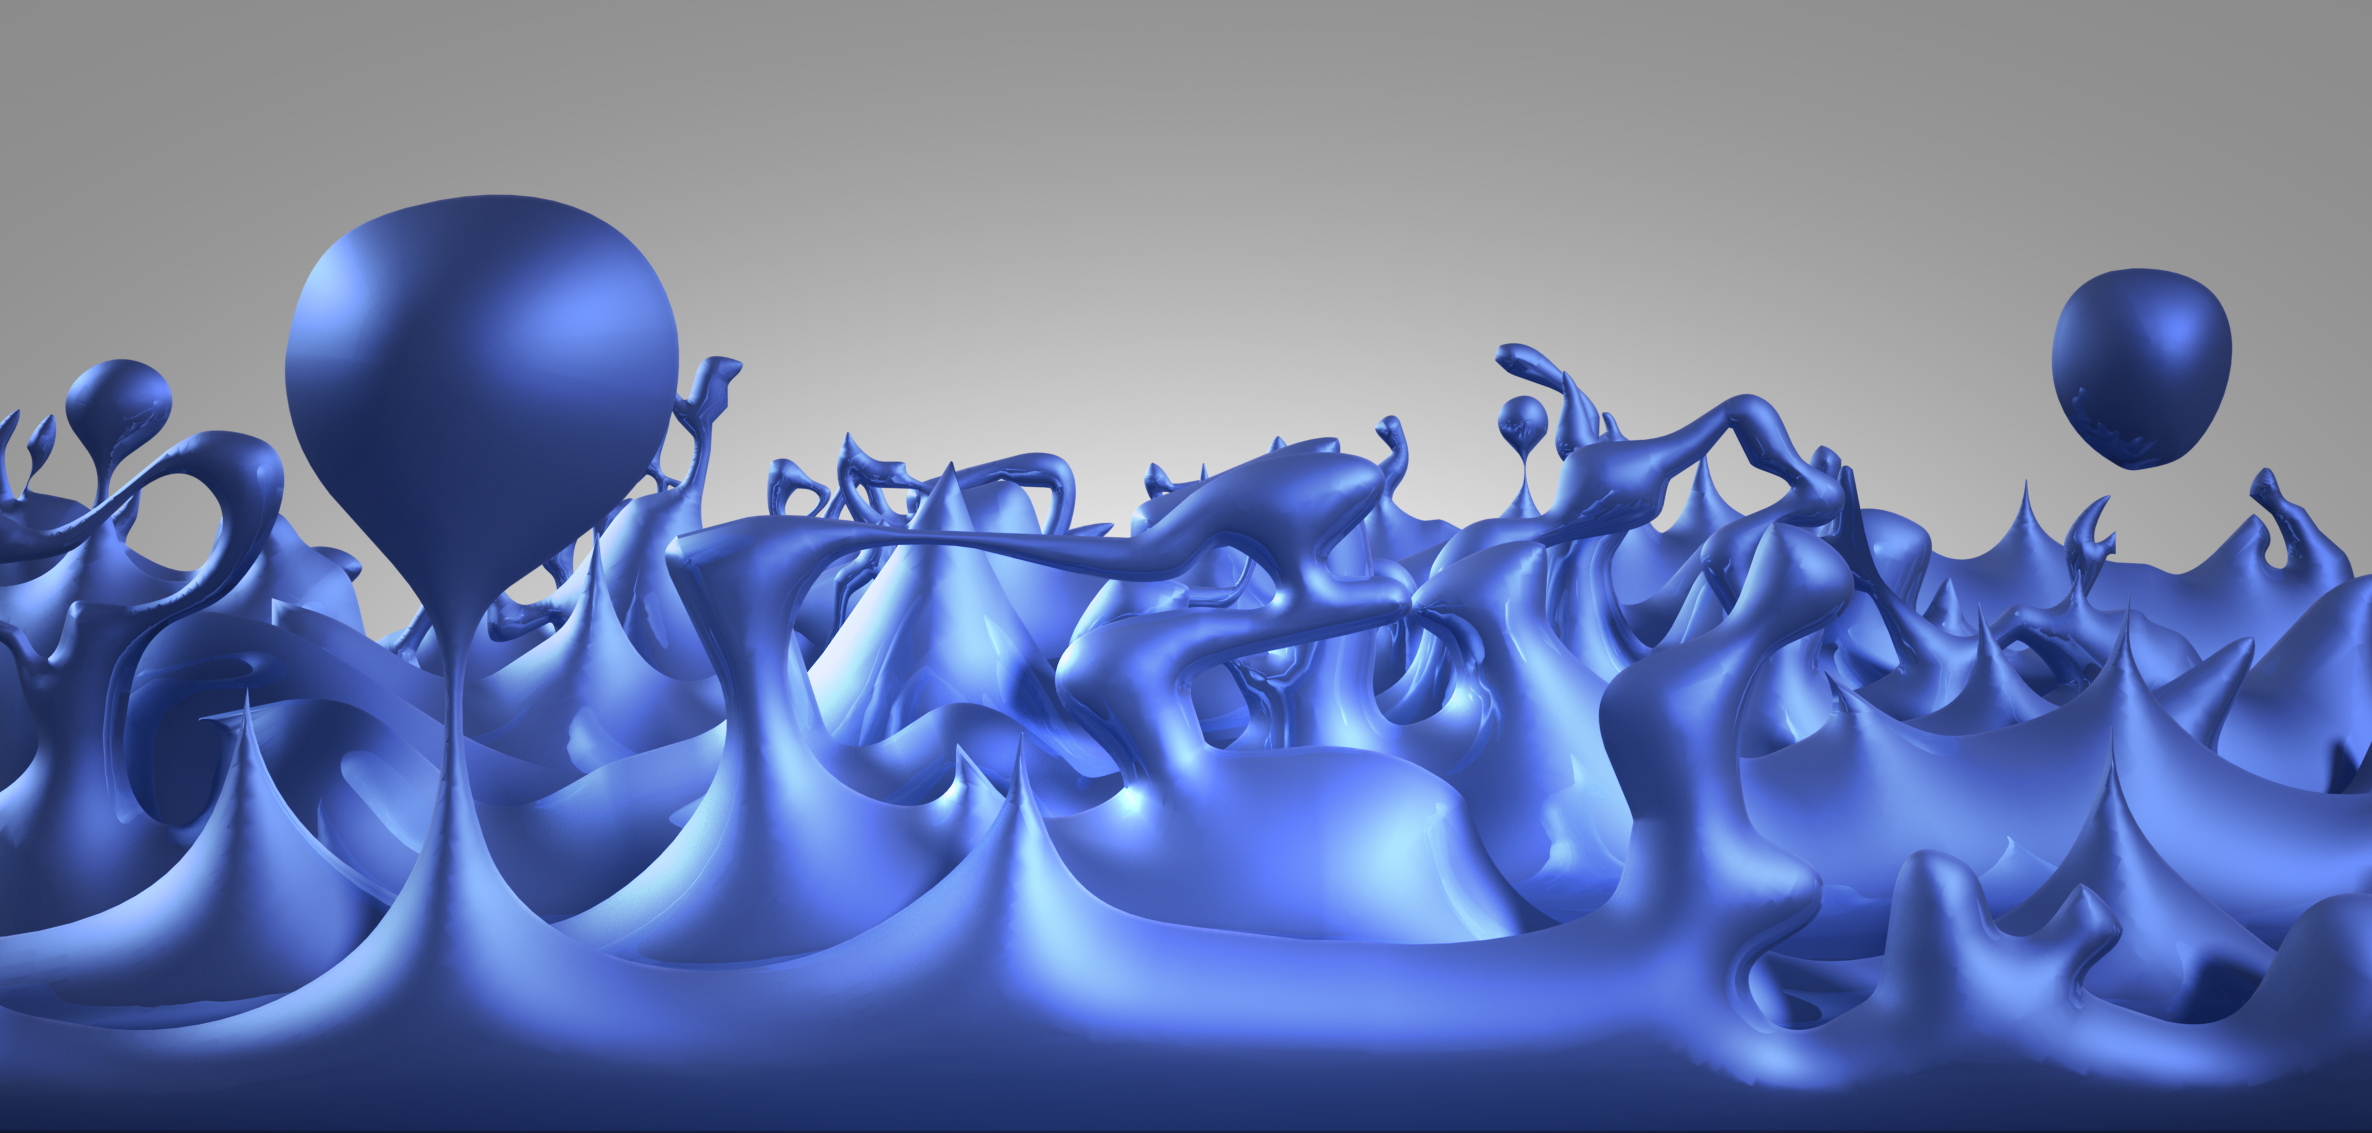 Illustration of Quantum Foam